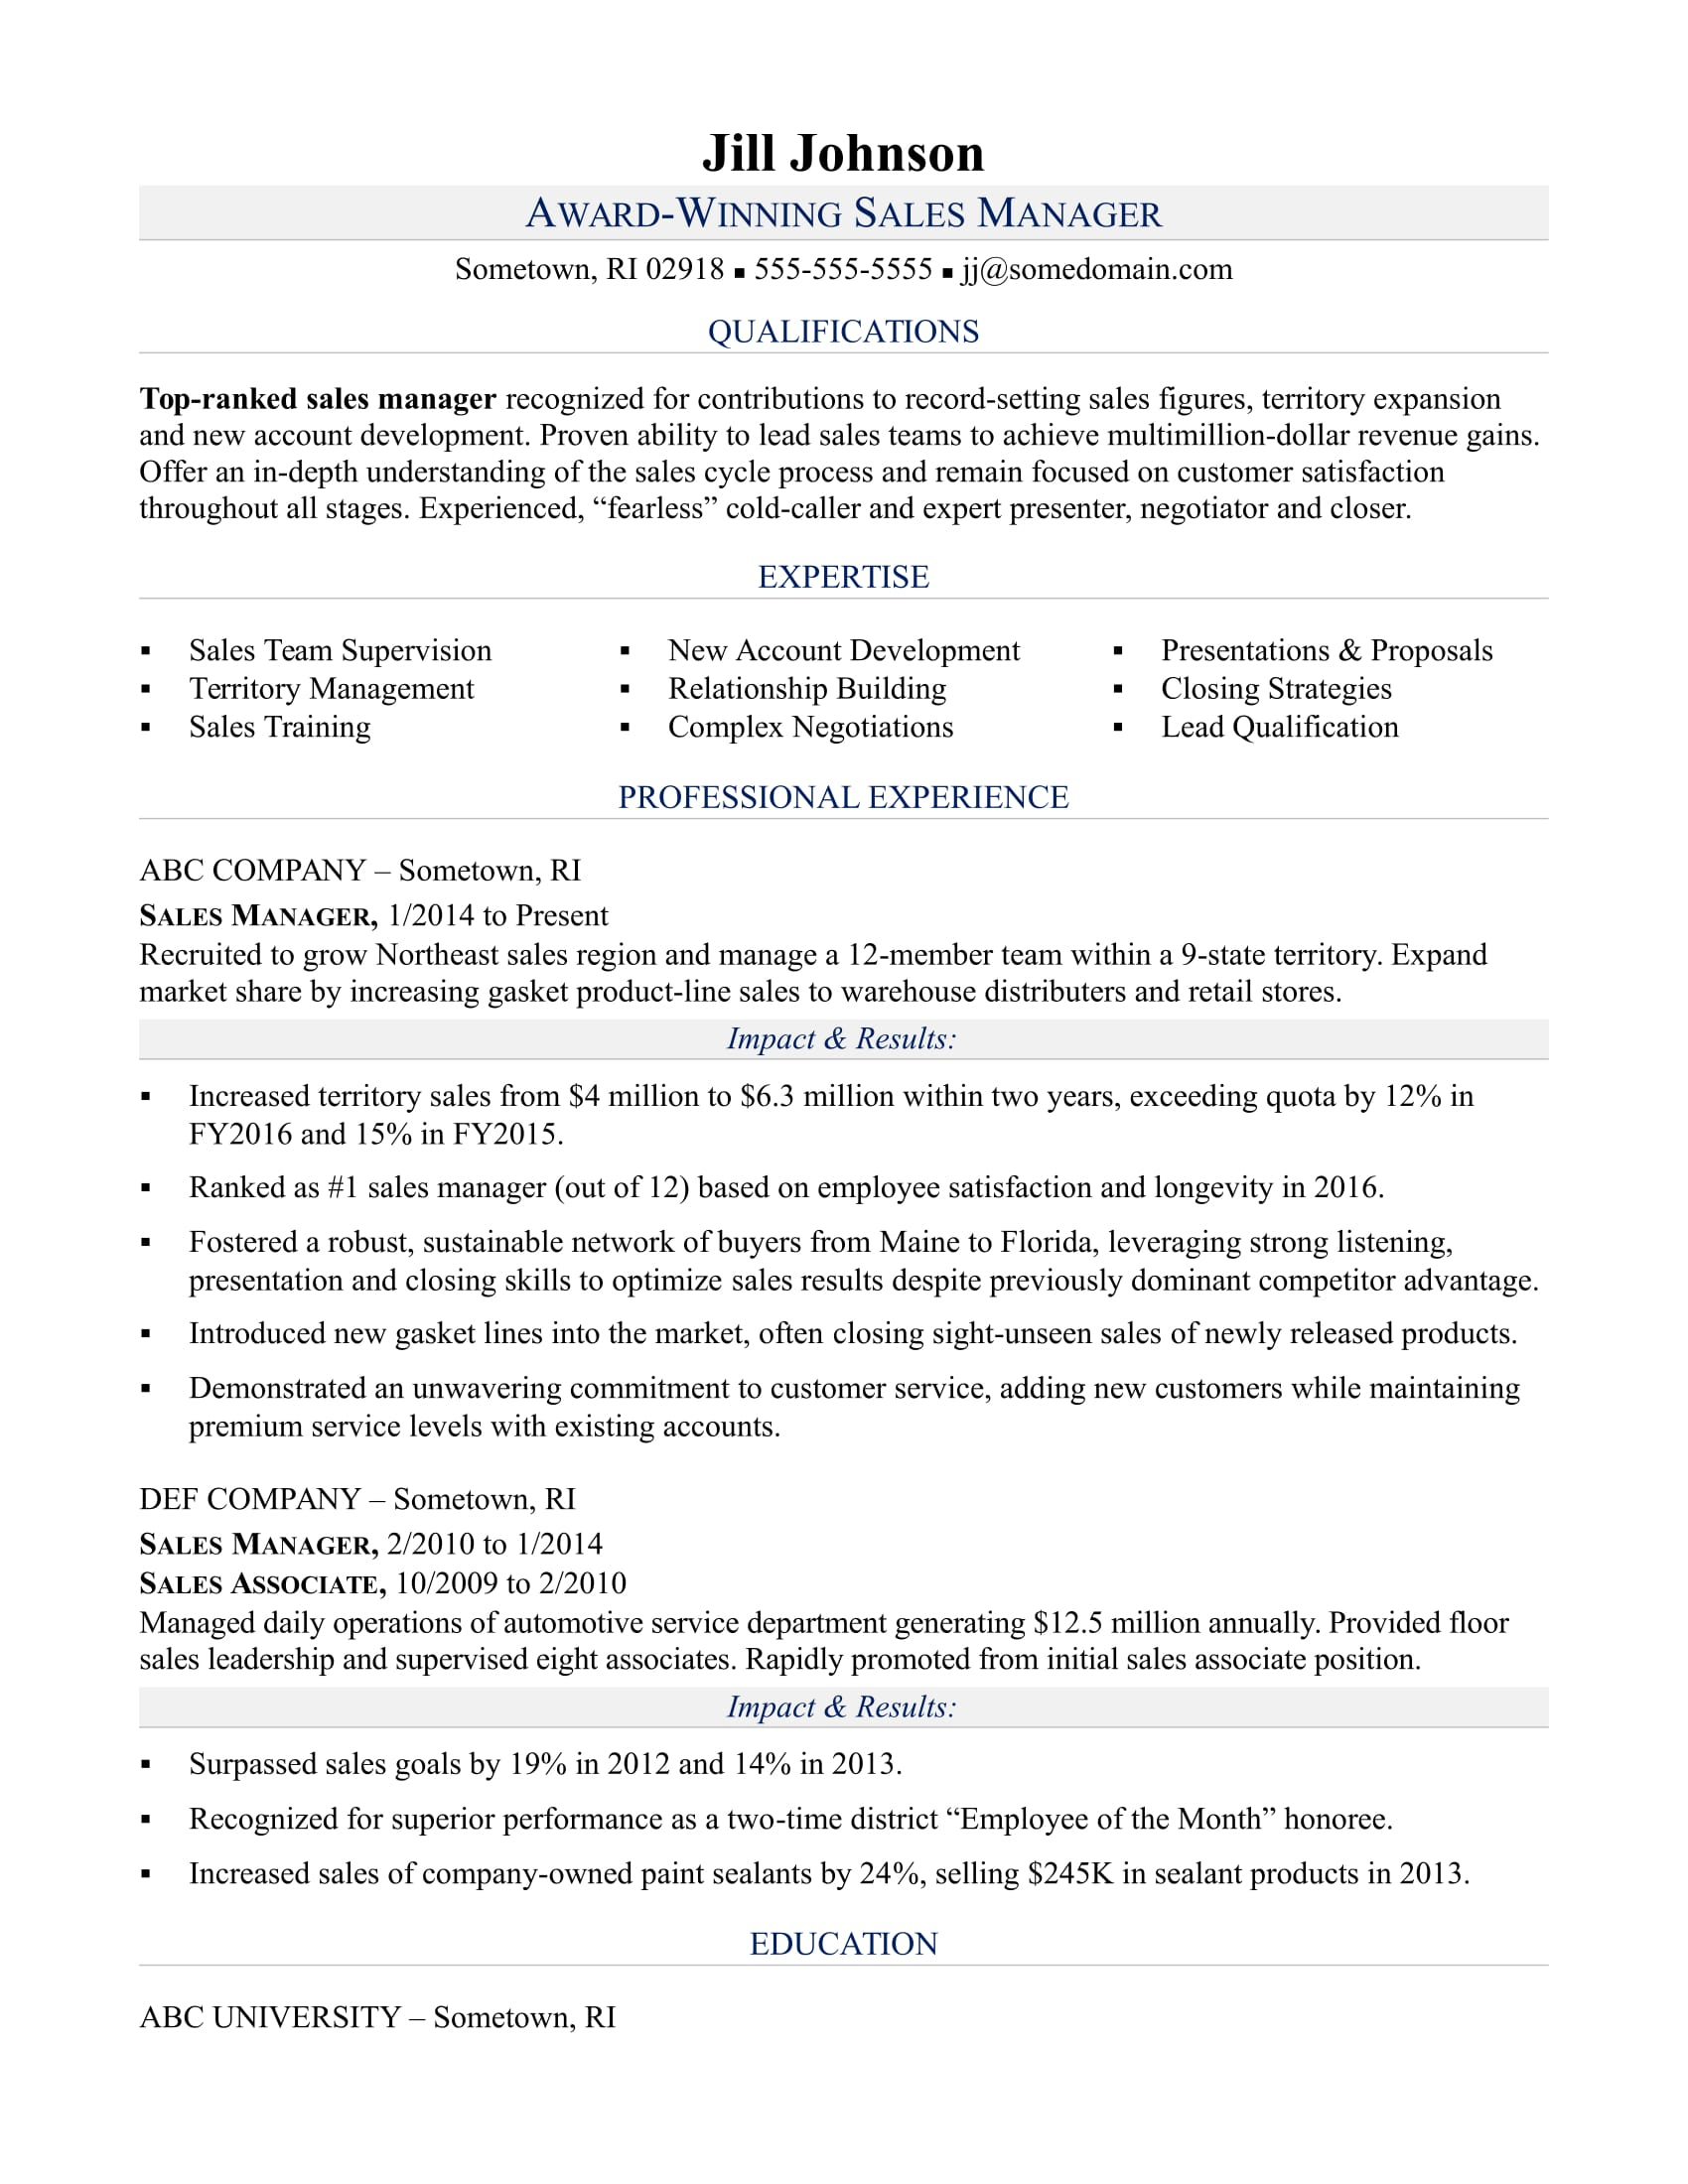 sample resume for a sales manager - Management Resume Template